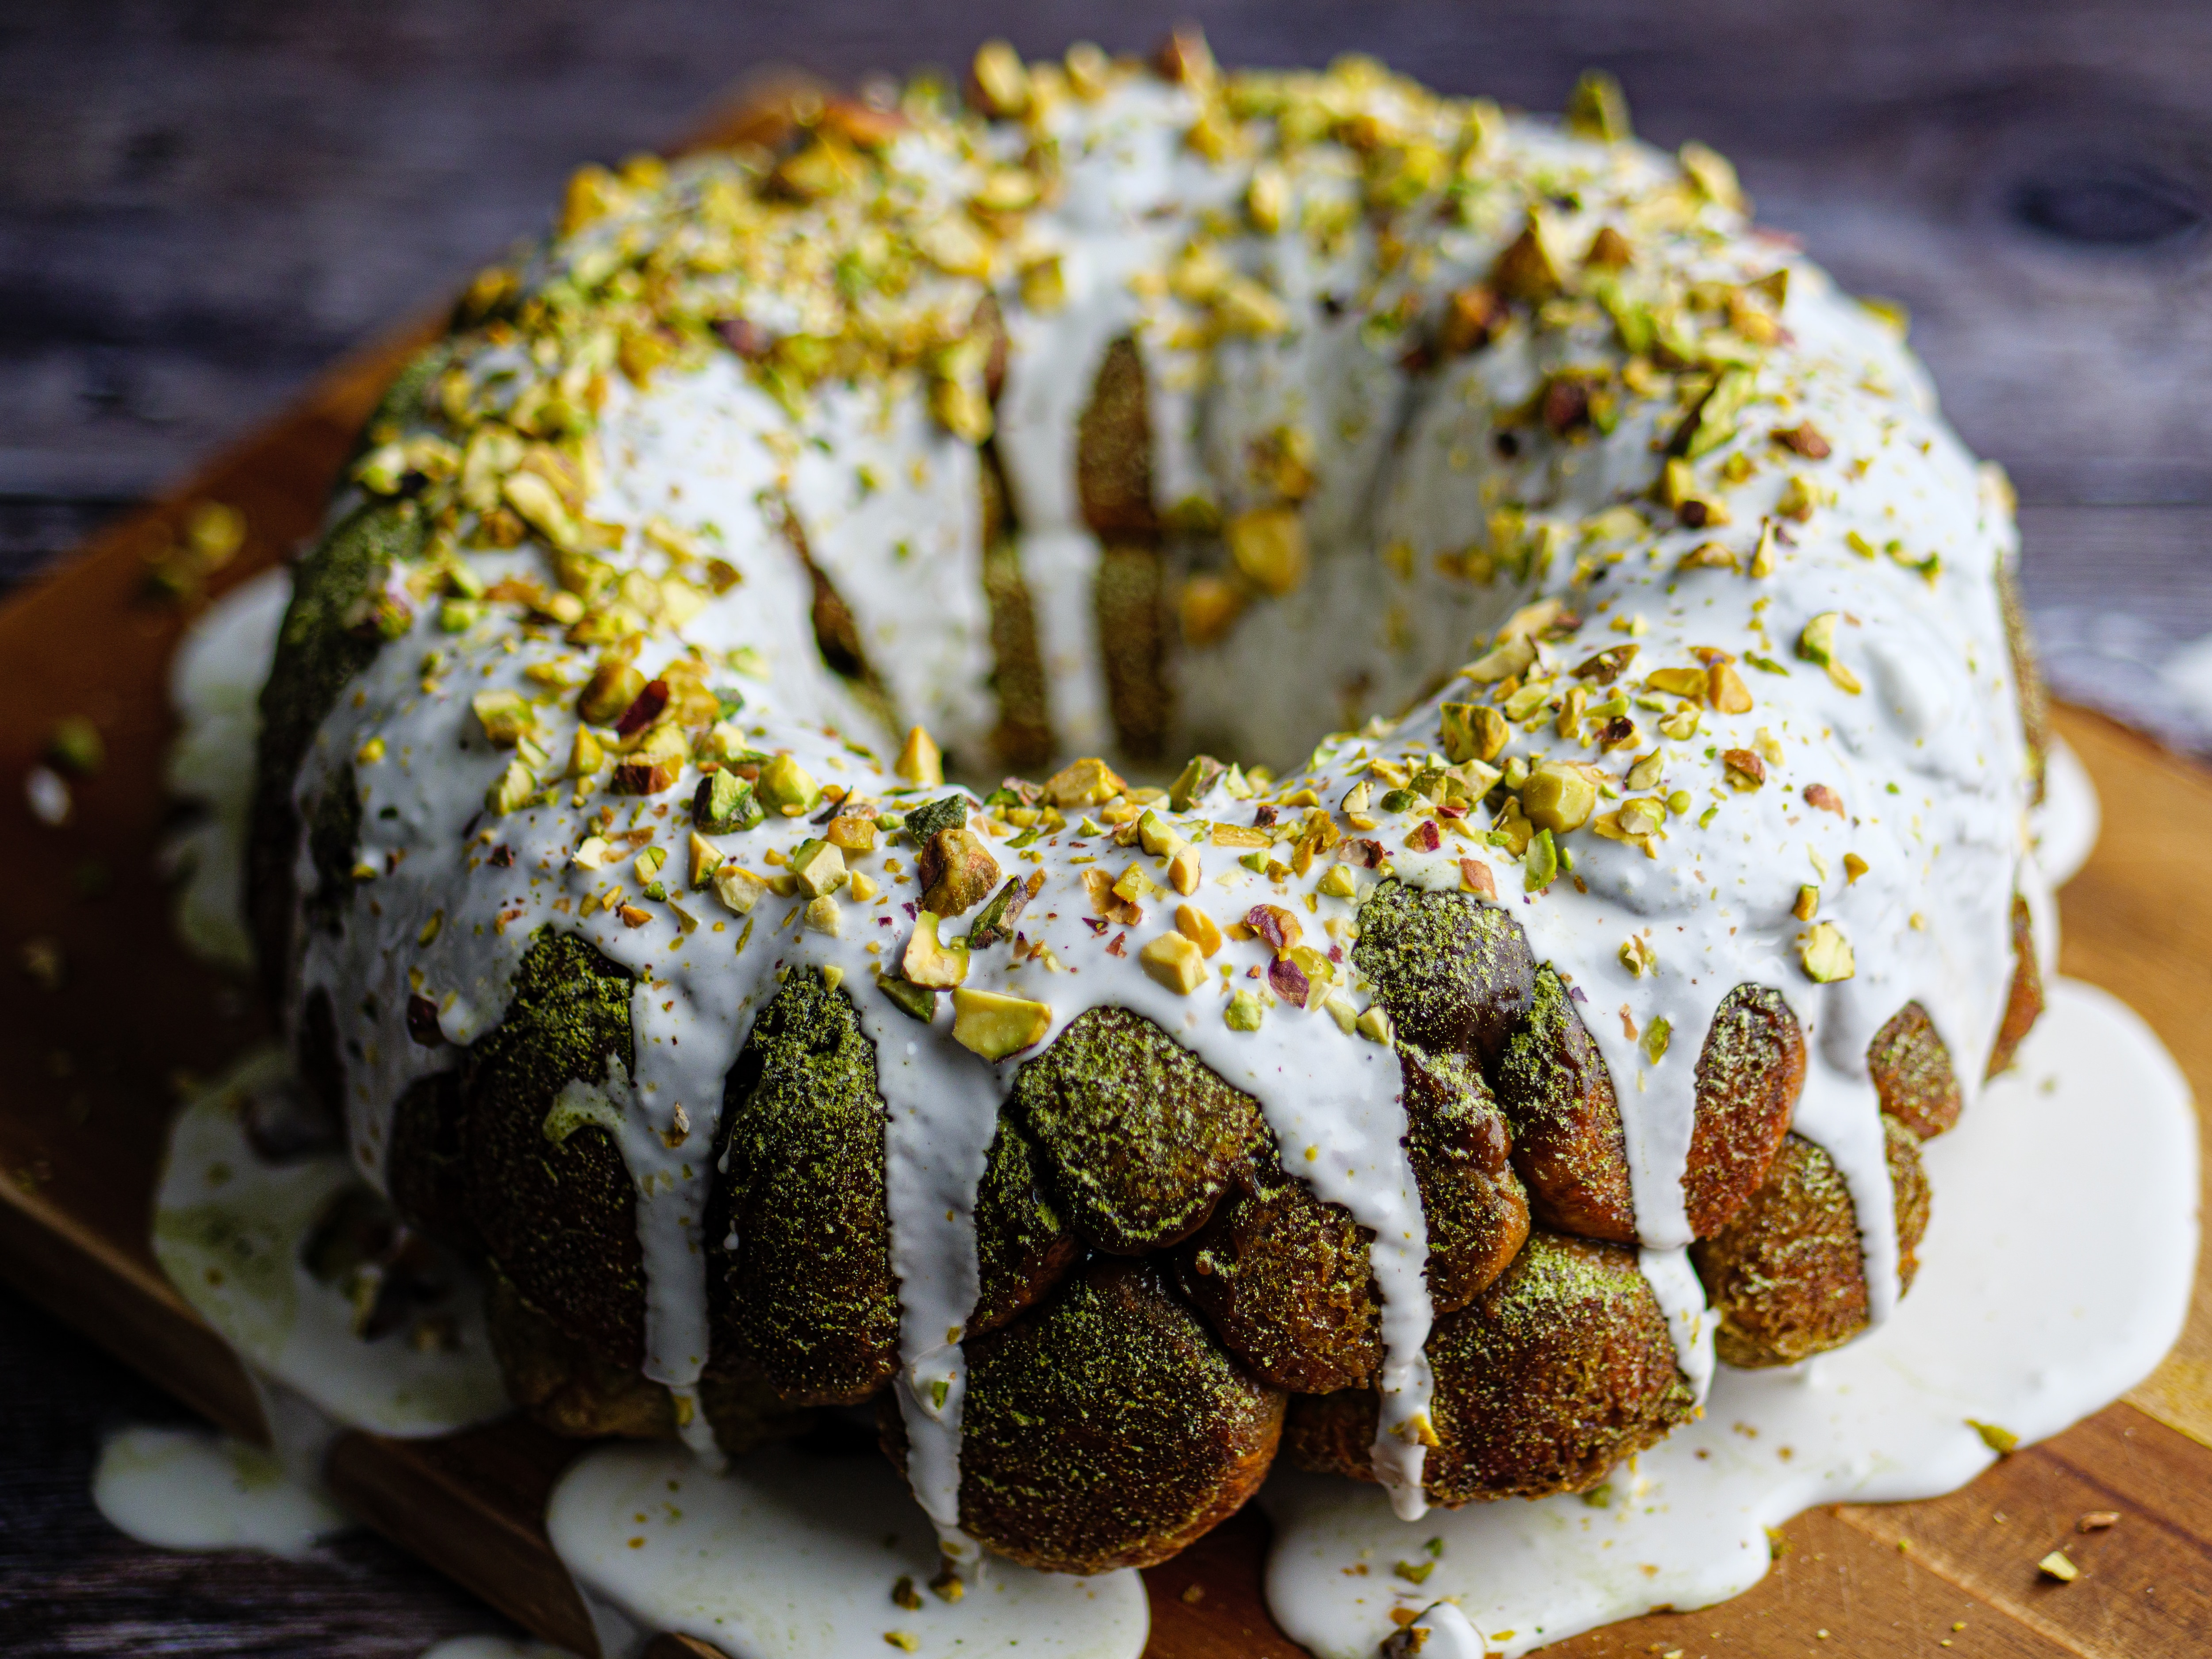 Green Tea Monkey Bread